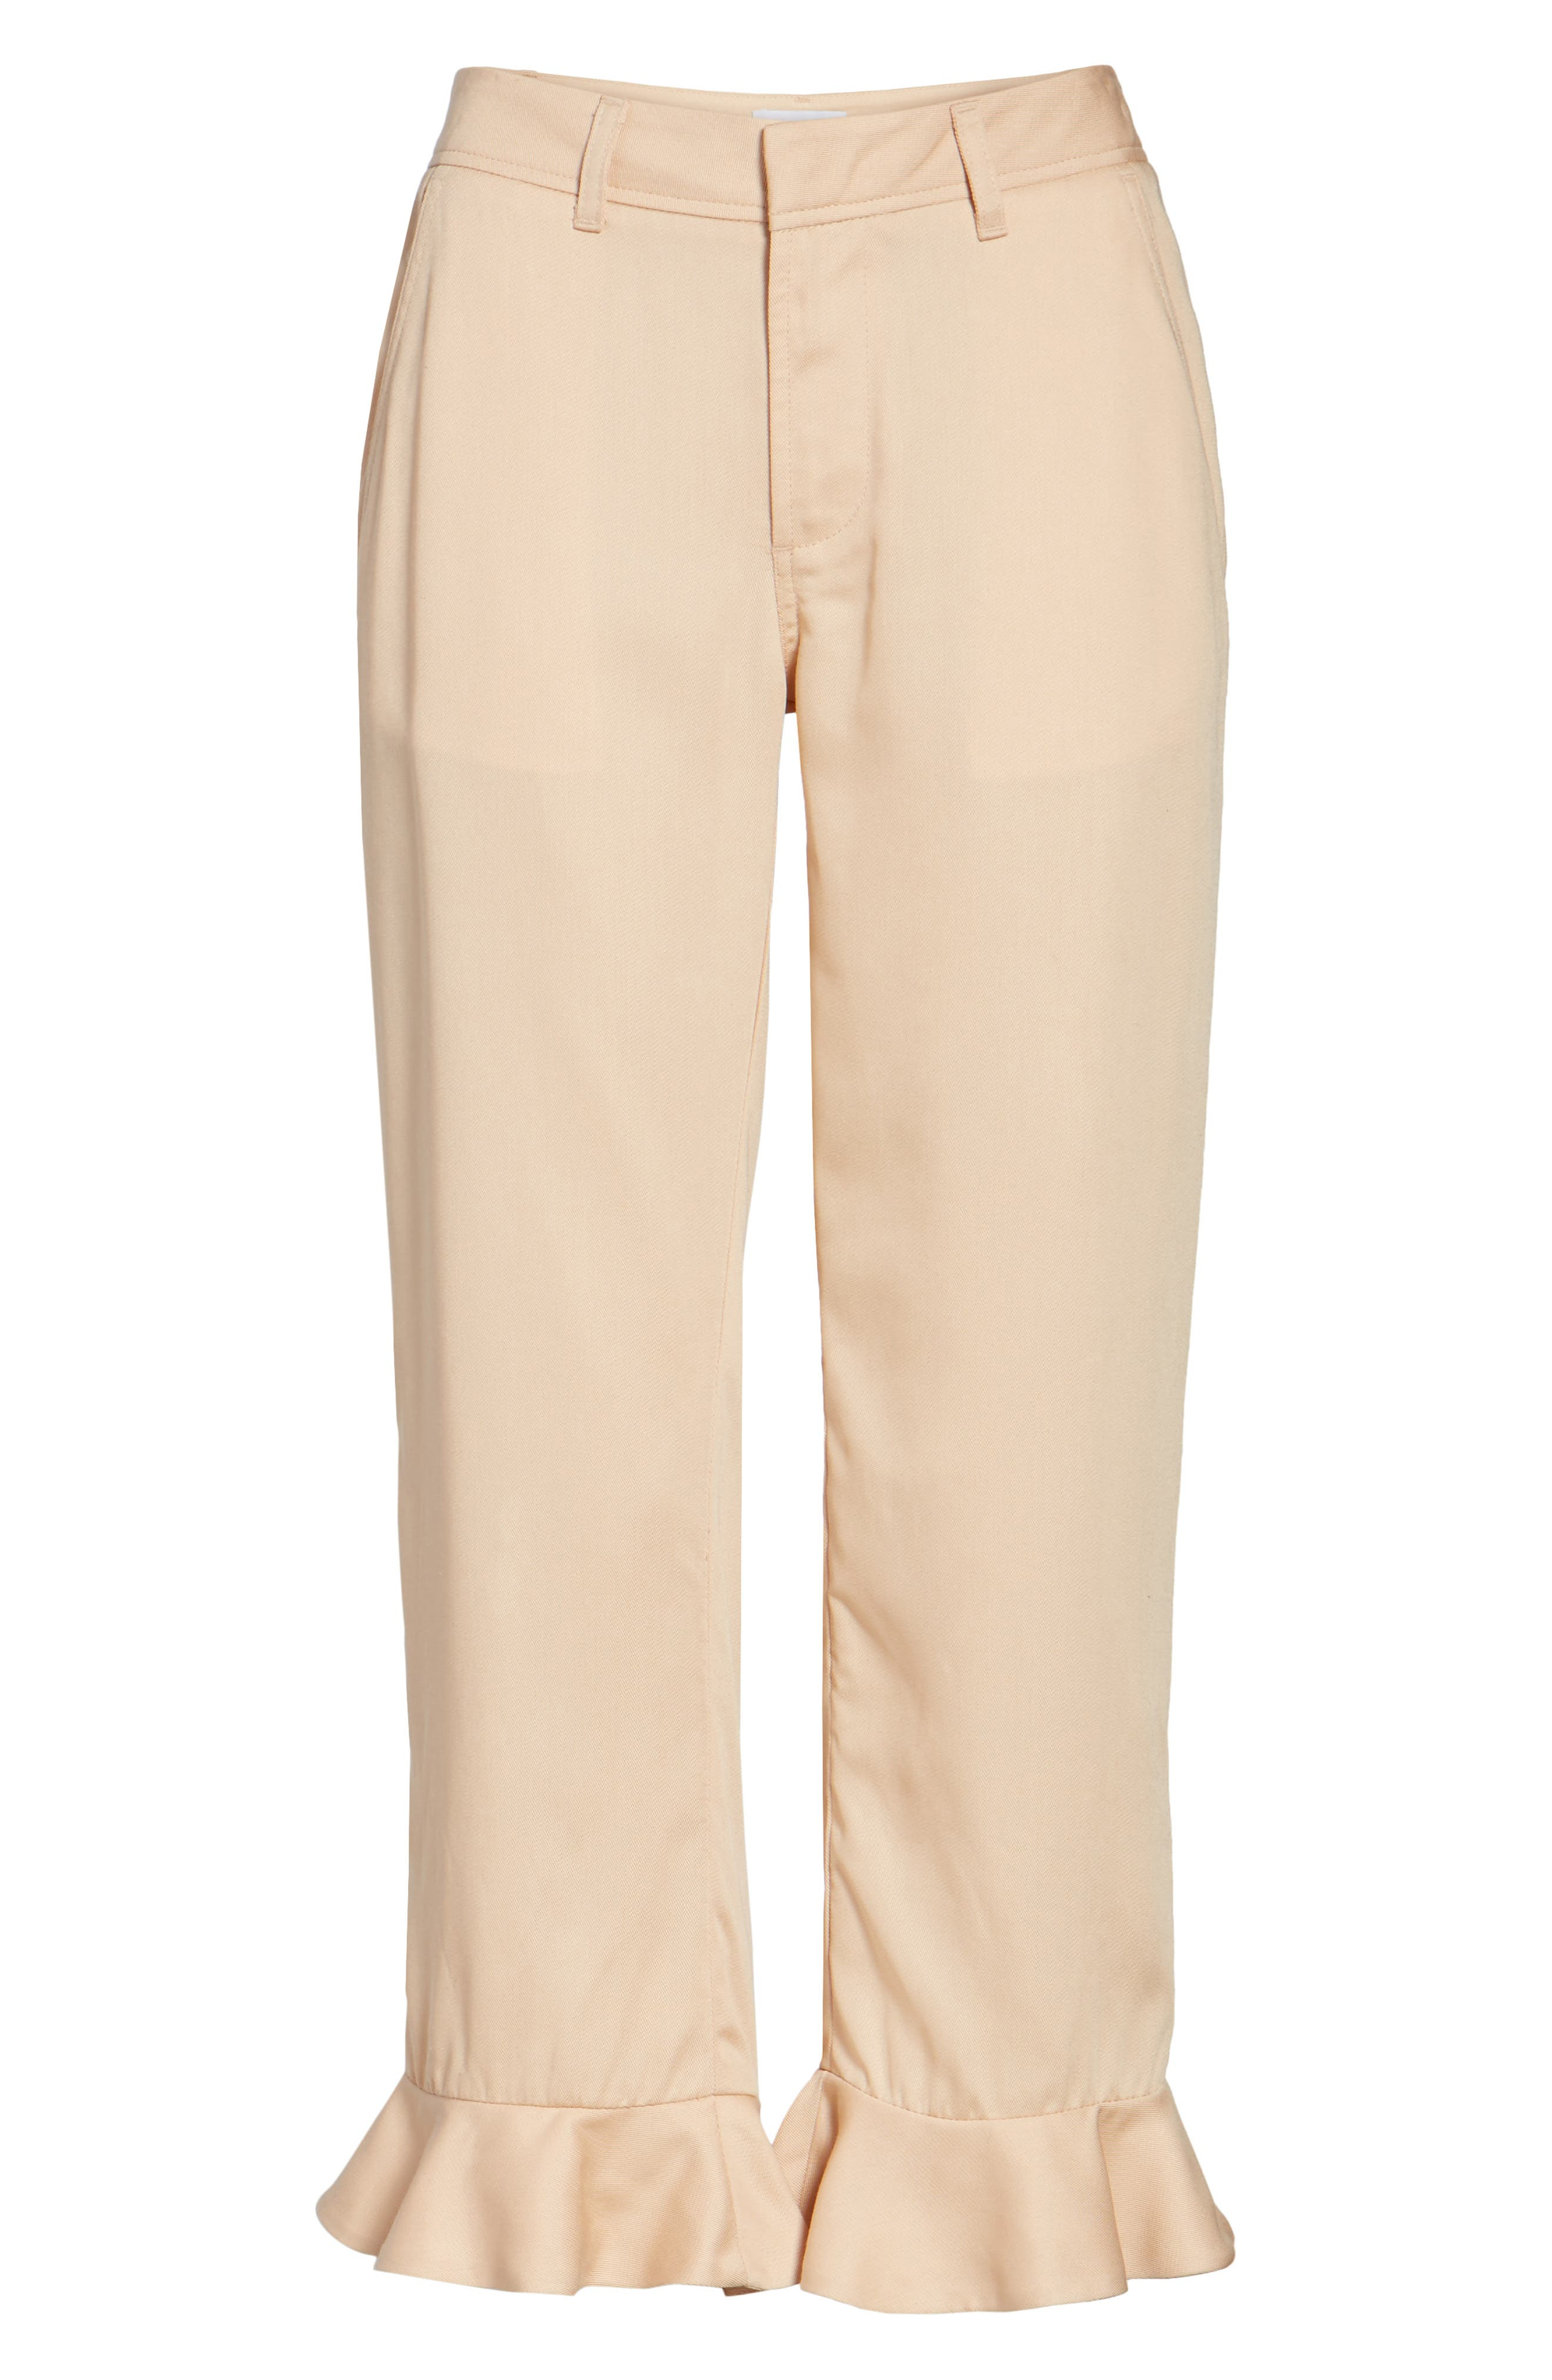 Ruffle Ankle Trousers,                             Alternate thumbnail 6, color,